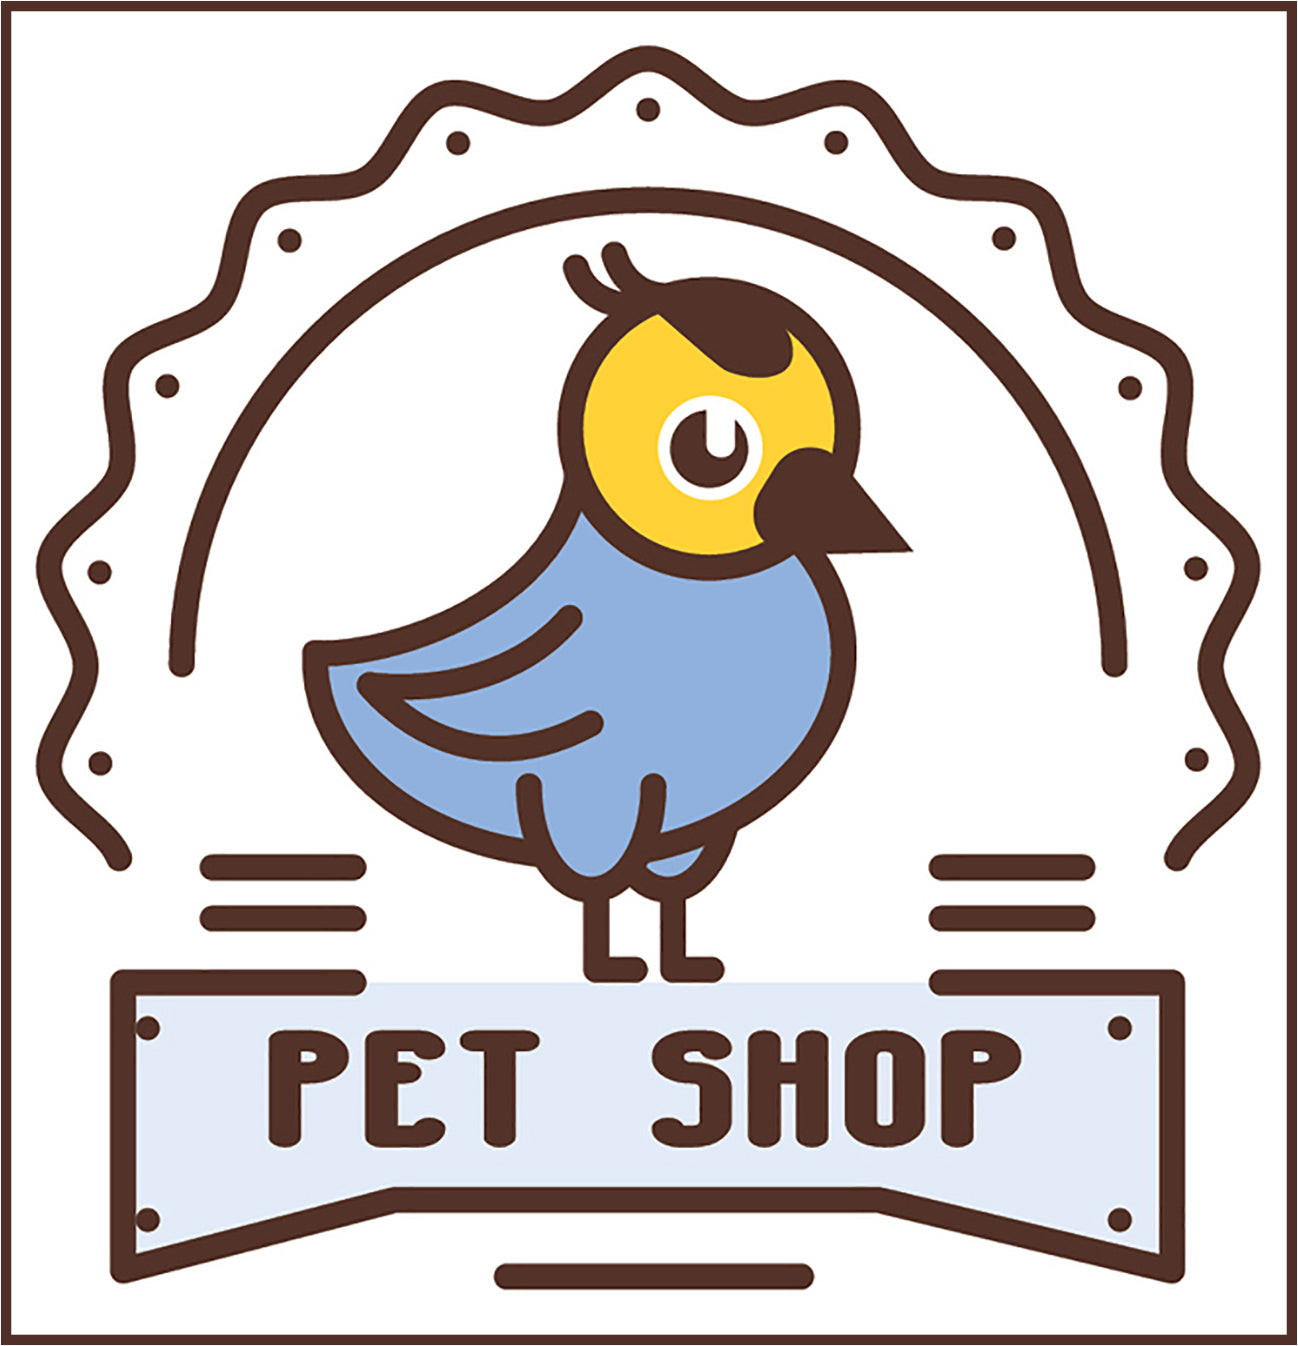 Cute Veterinary Clinic Pet Shop Cartoon Logo Icon #16 Vinyl Decal Sticker